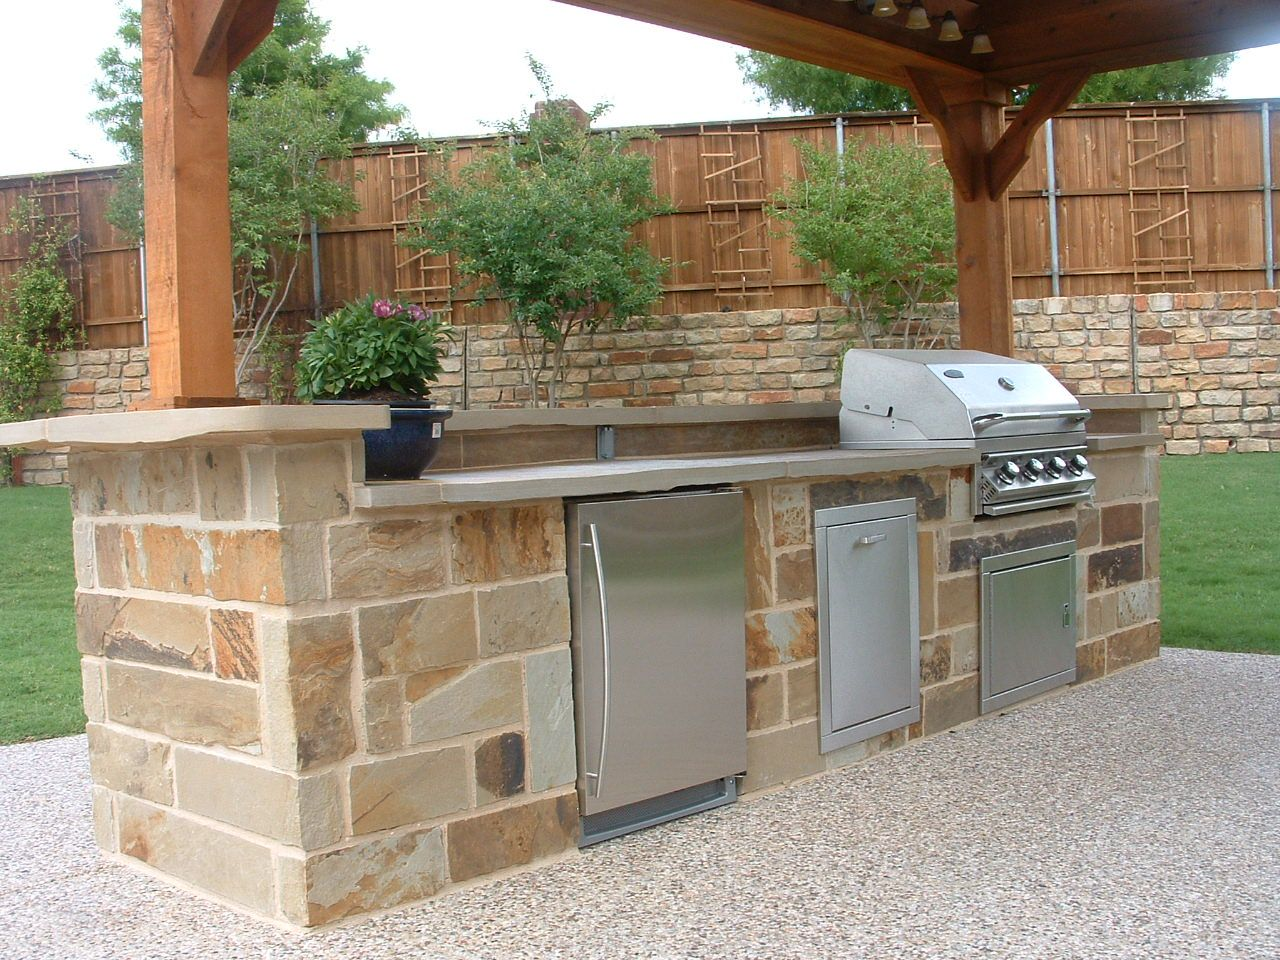 outdoor kitchen area with grilling station fort worth texas pool pinterest grill. Black Bedroom Furniture Sets. Home Design Ideas